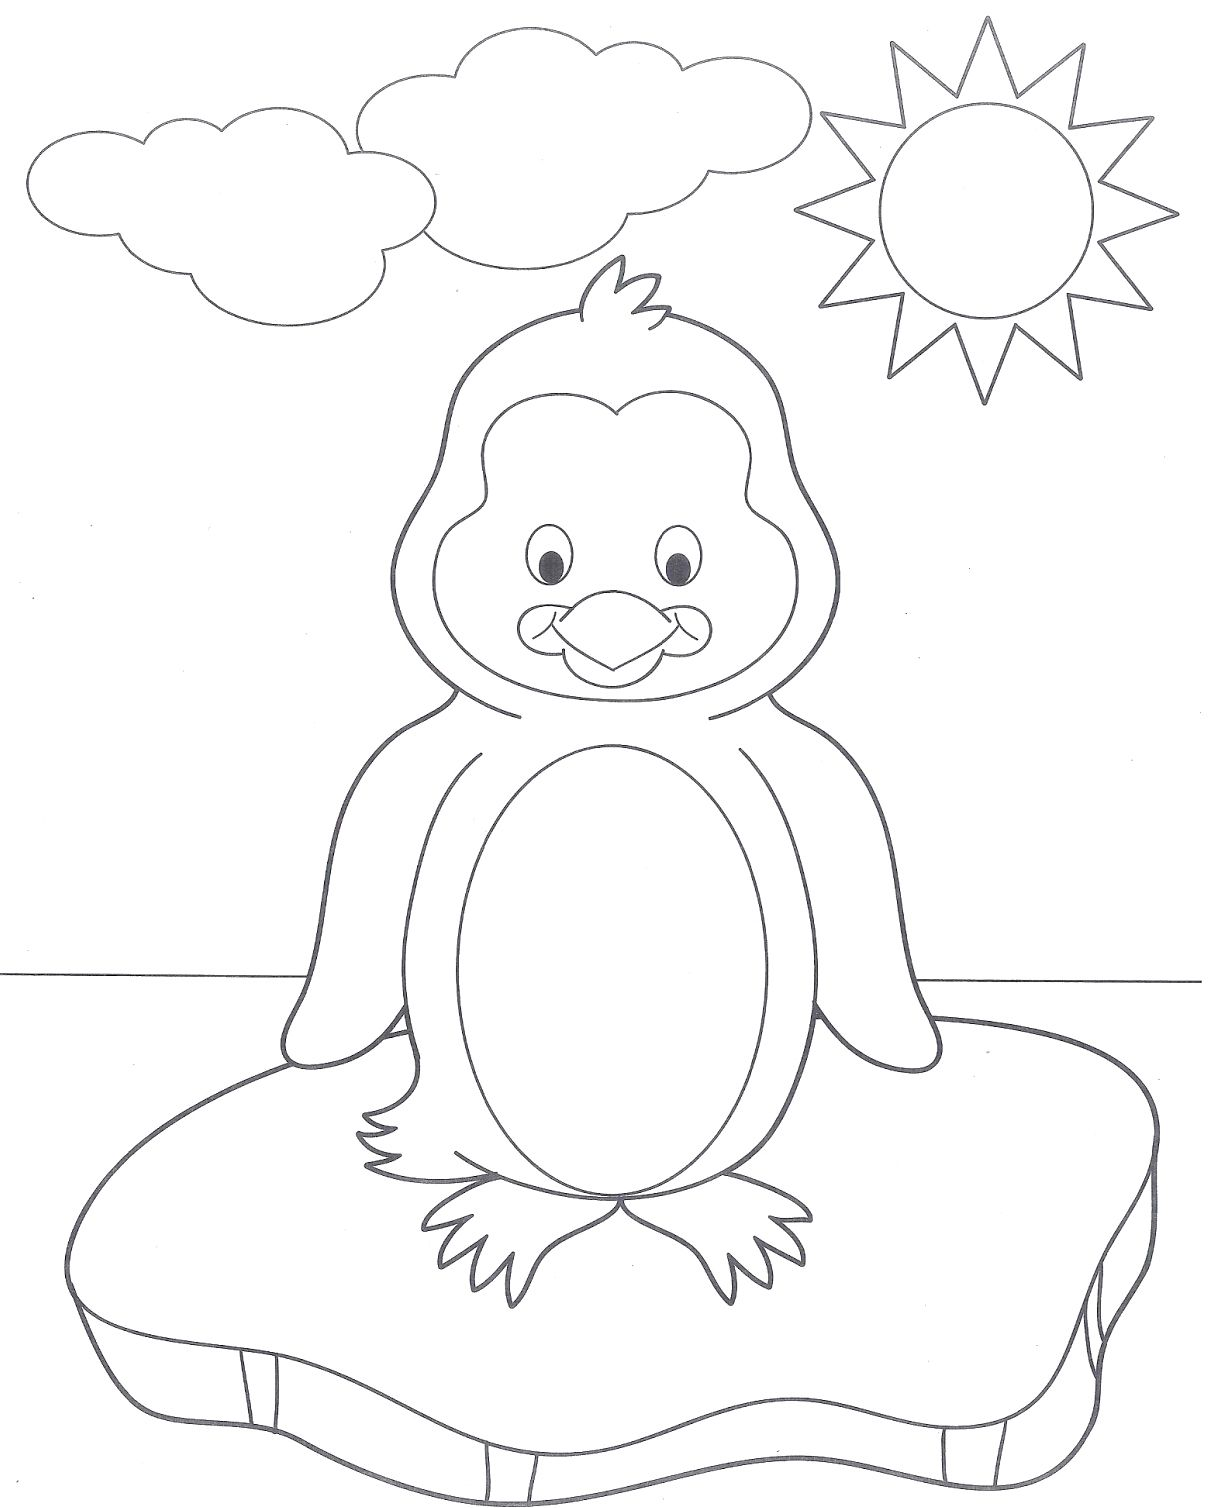 48+ Cute baby penguin coloring pages ideas